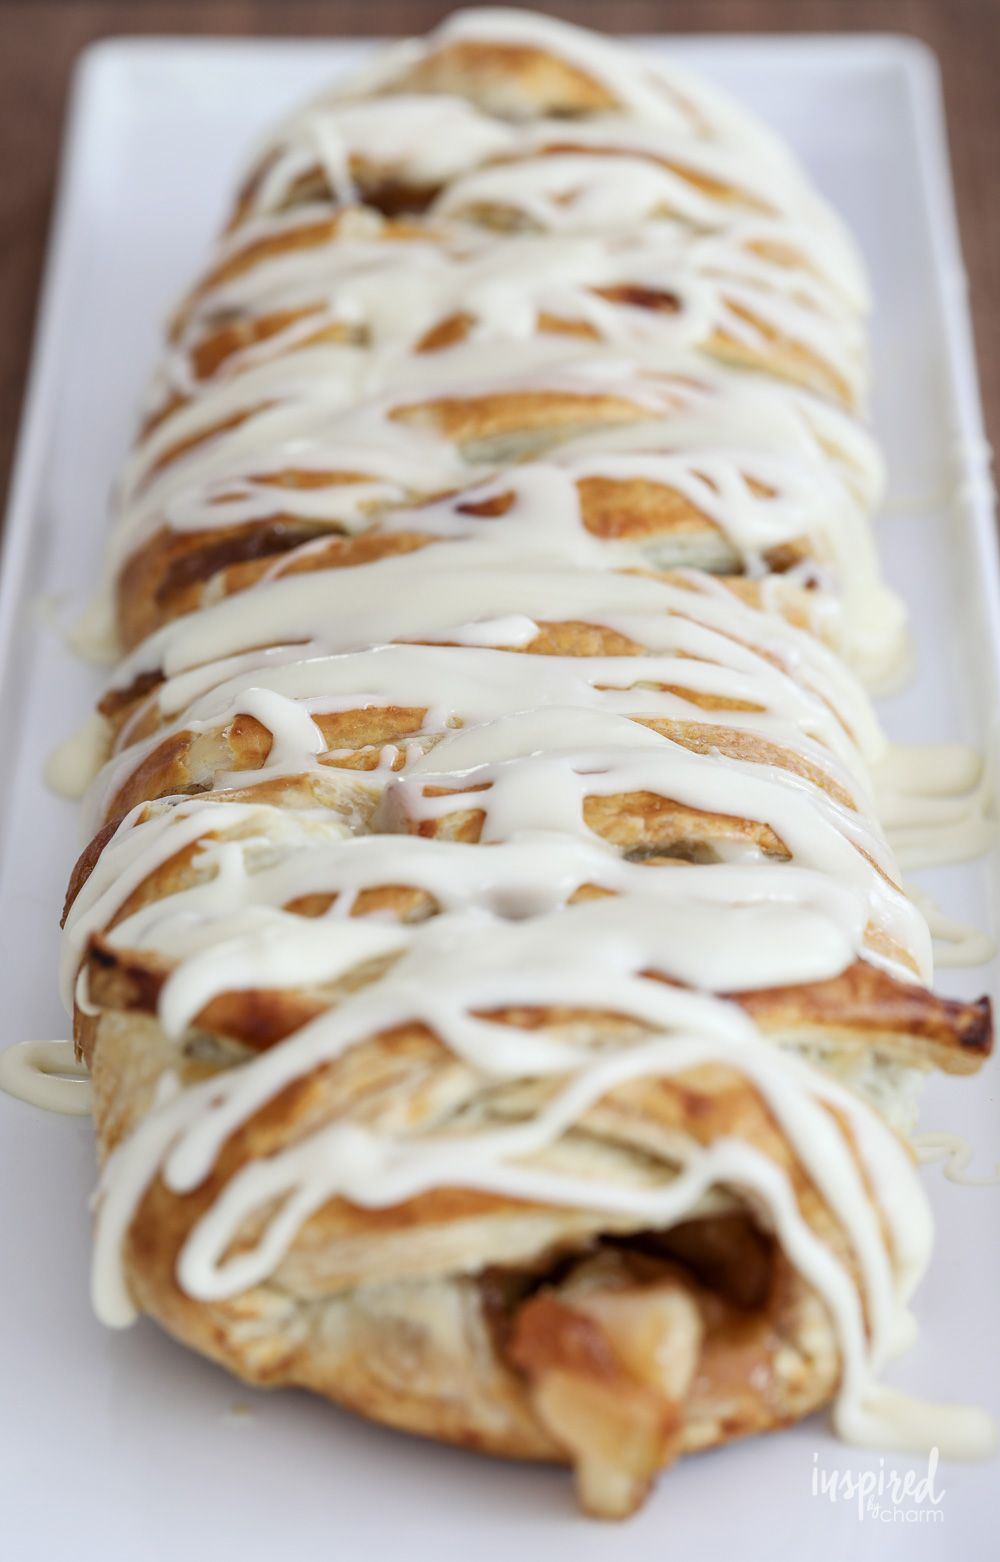 Make Apple Strudel At Home With This Delicious And Easy Recipe